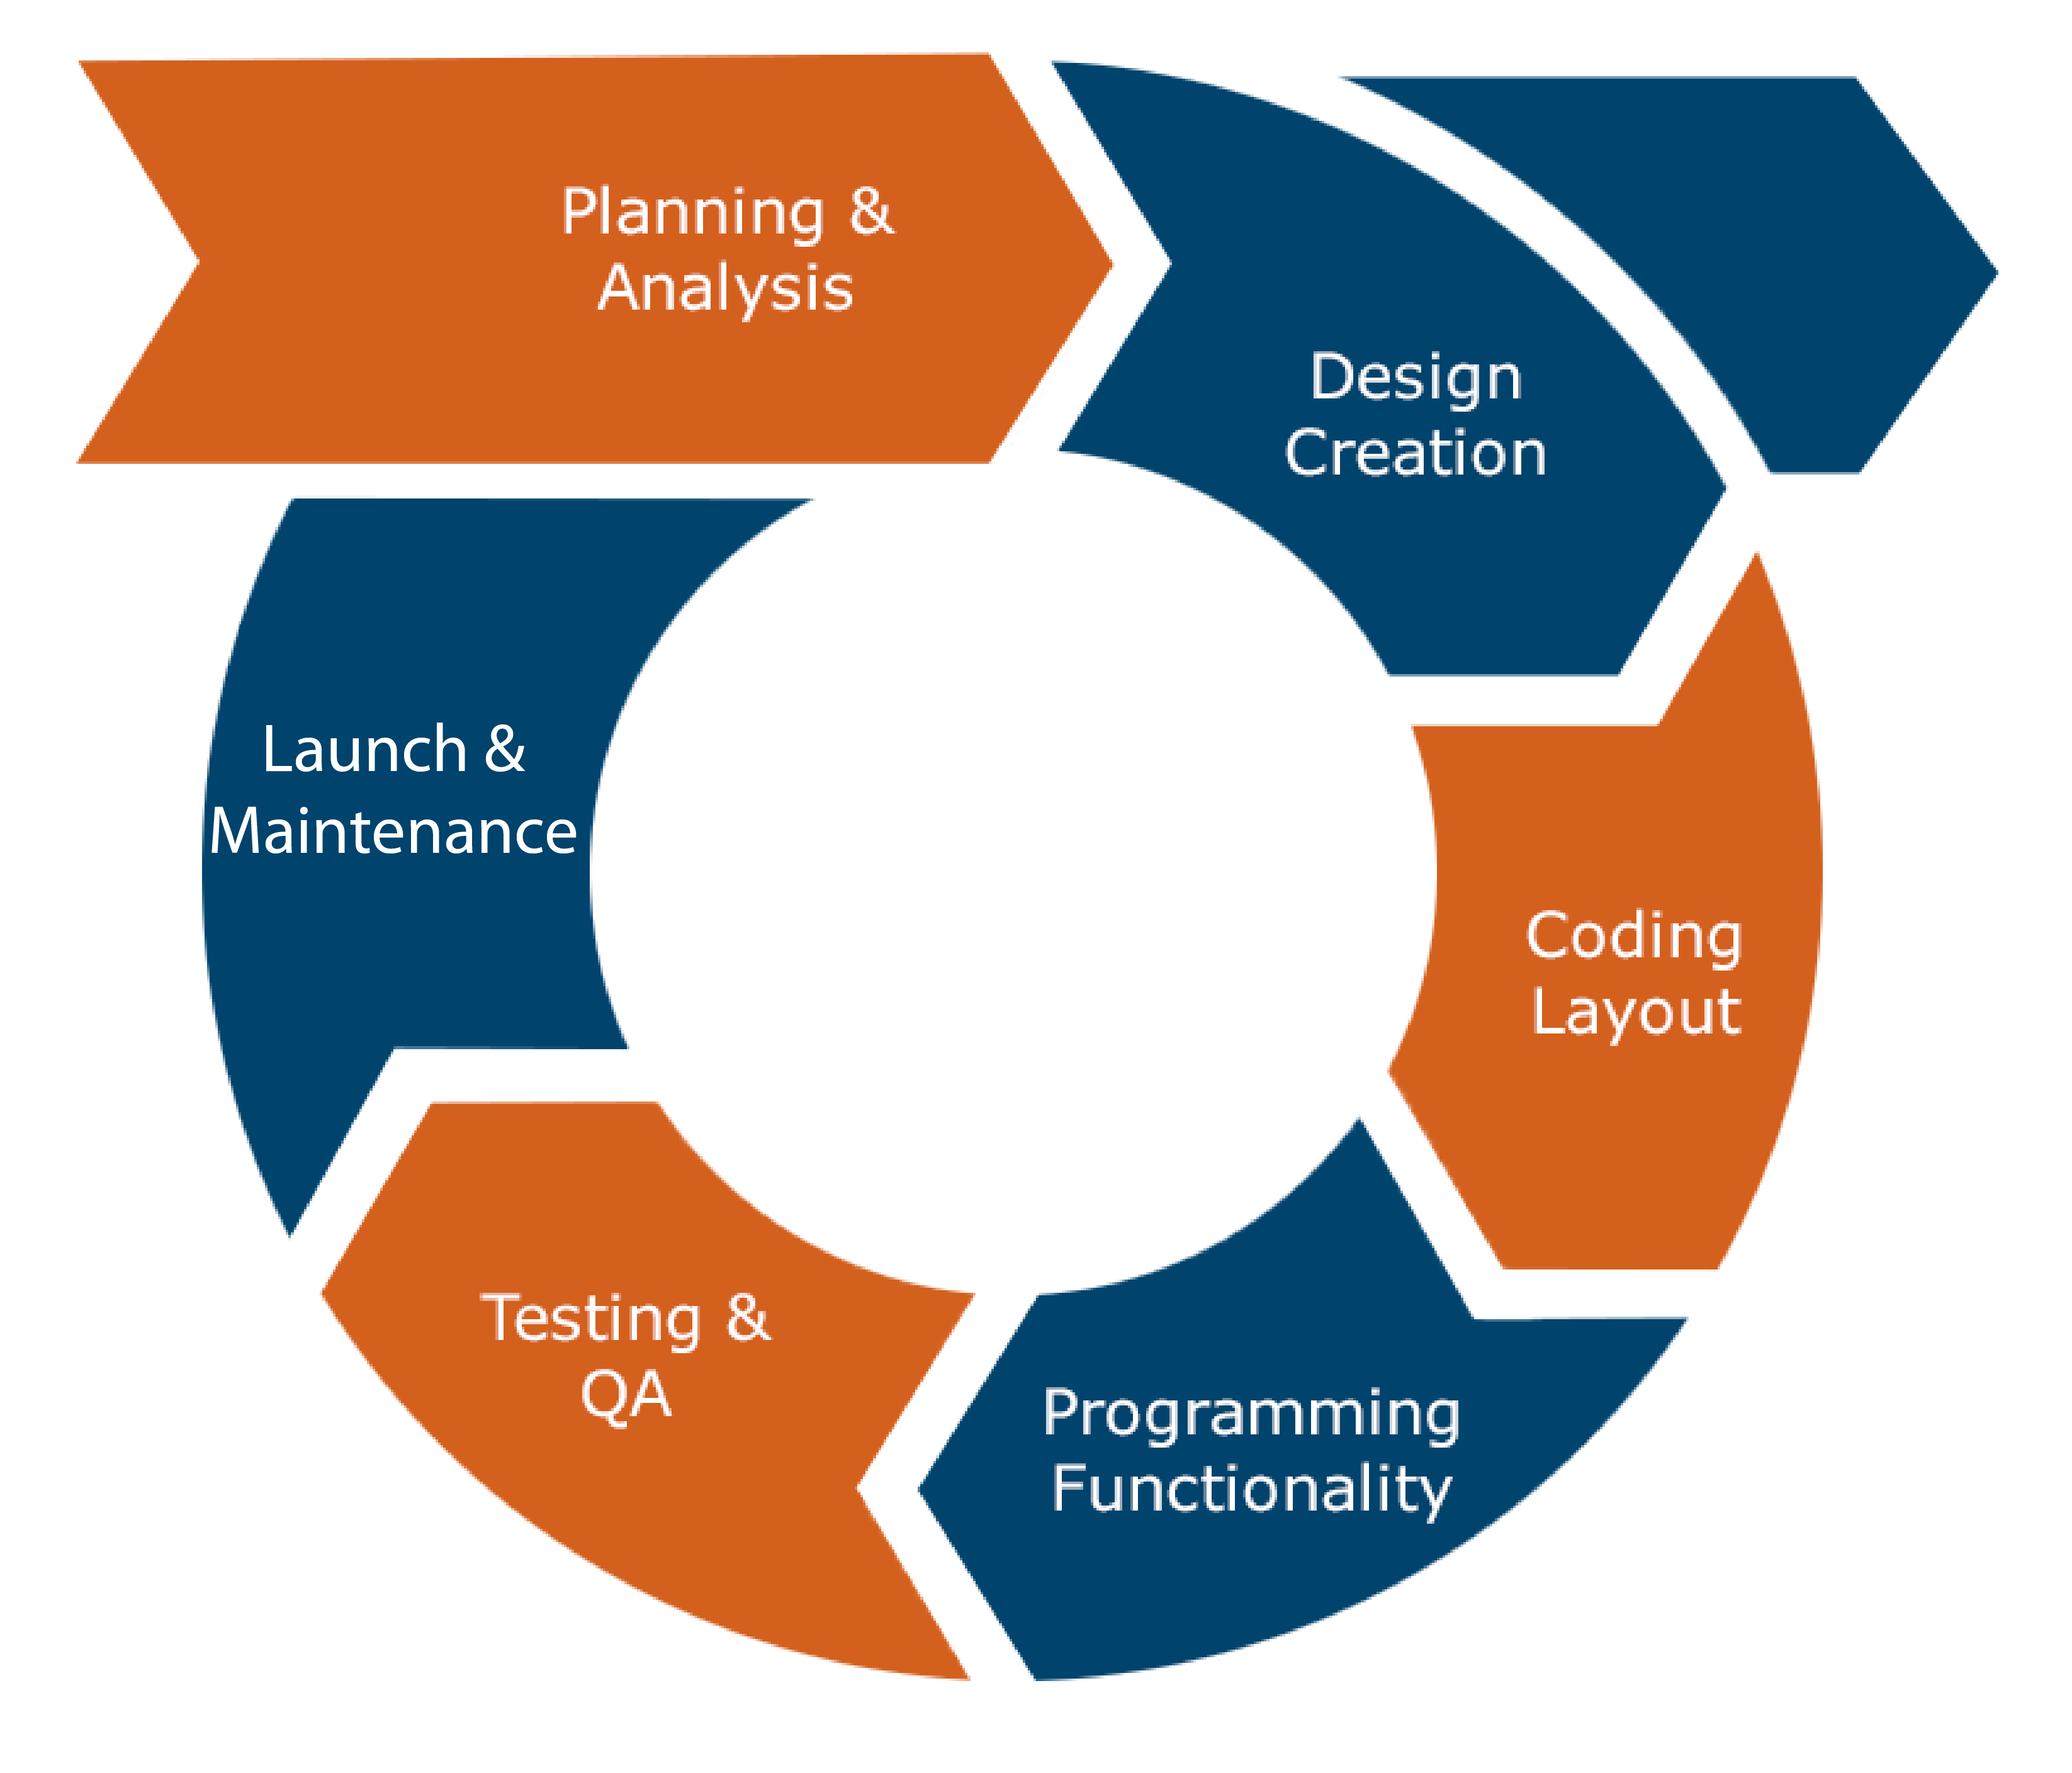 The 6 main web development stages in a waterwheel diagram: planning and analysis, design creation, coding layout, programming functionality, testing and QA, and launch and maintenance